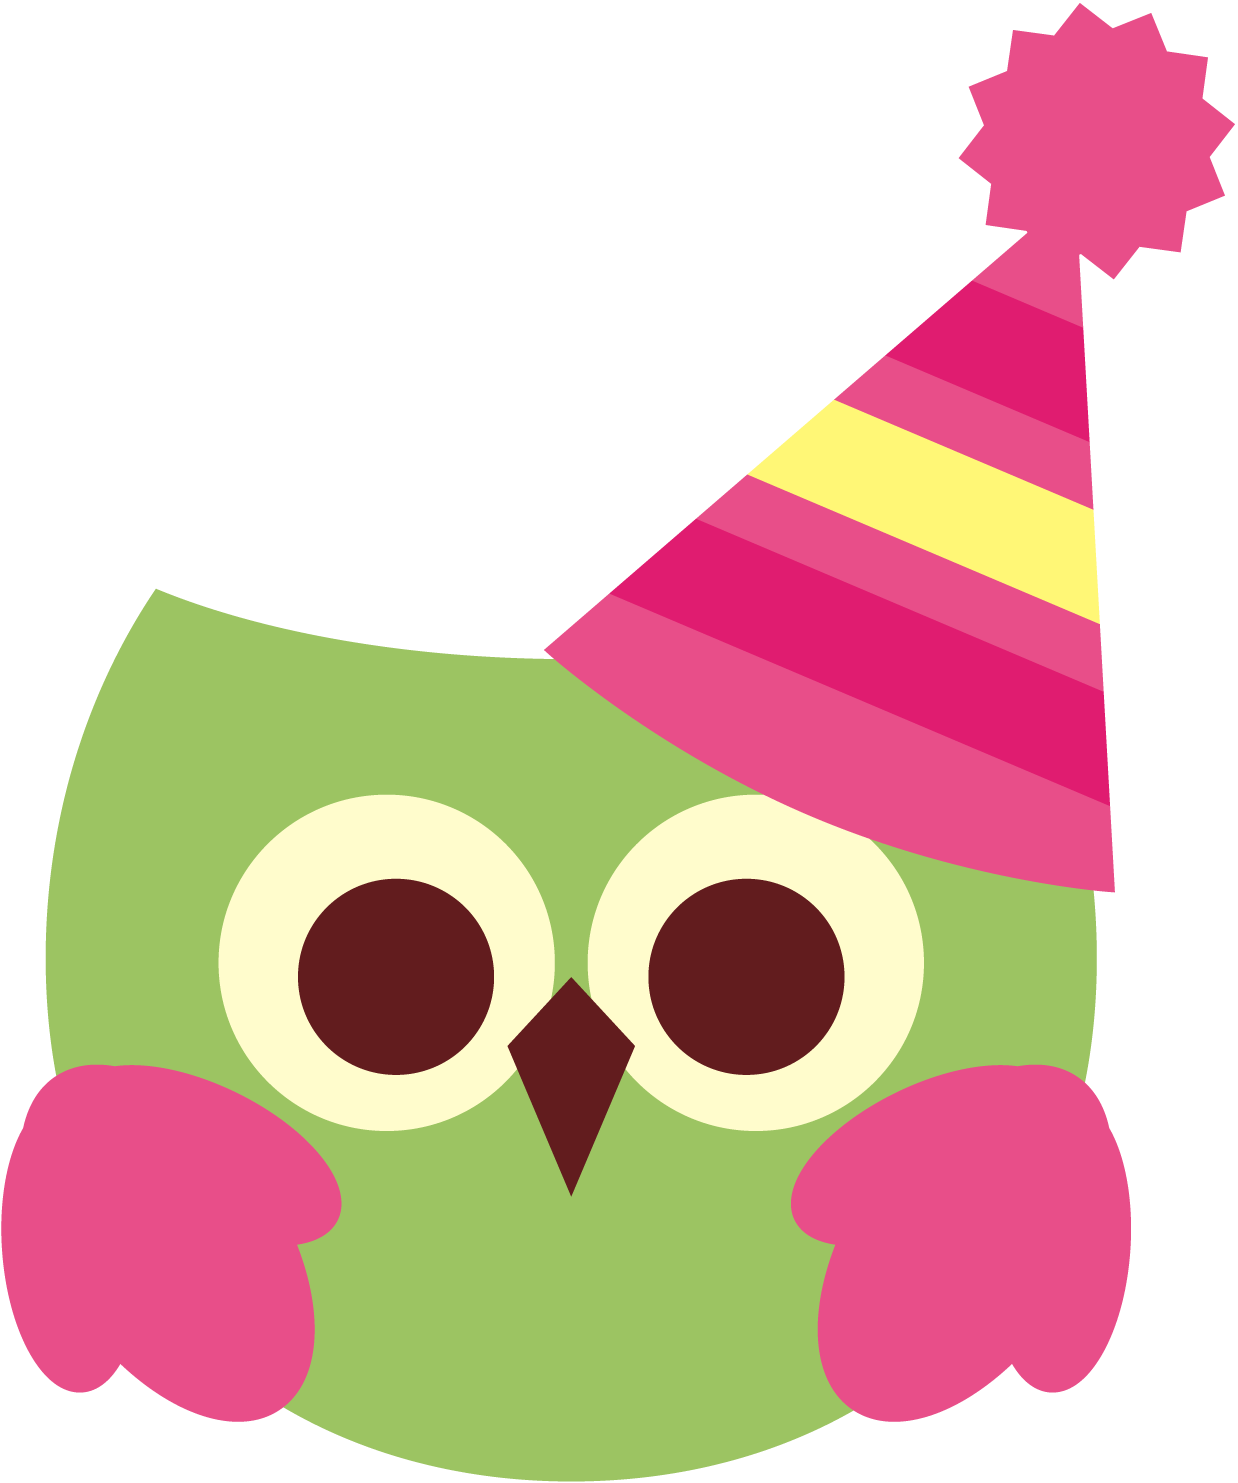 So I Ll Share This Cute Birthday Owl Clipart Graphic For Free Enjoy